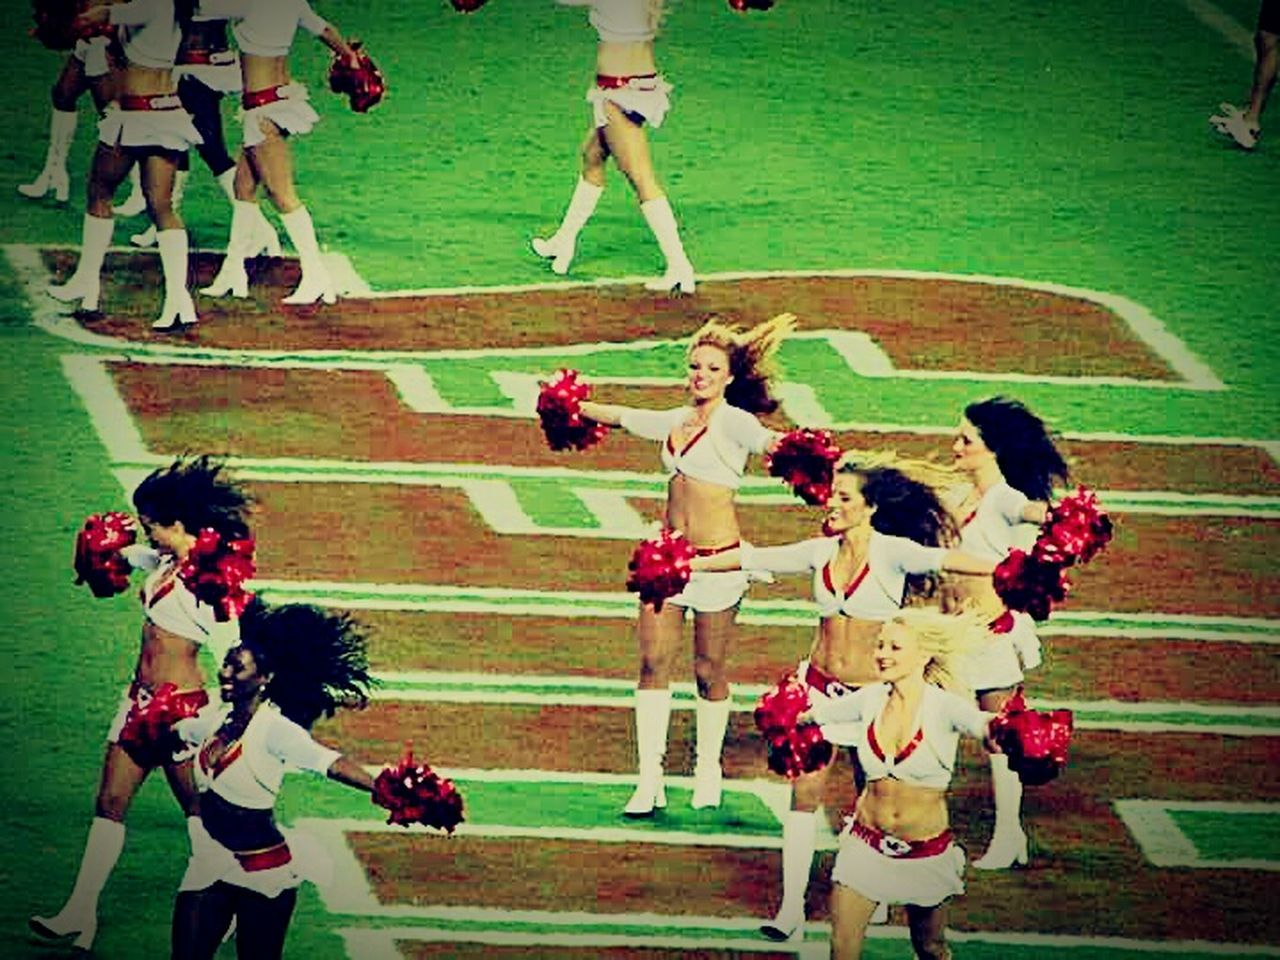 Adventure Club Football LoveEm Chiefsnation Chiefskingdom Enjoying Life Cheerleading Taking Photos